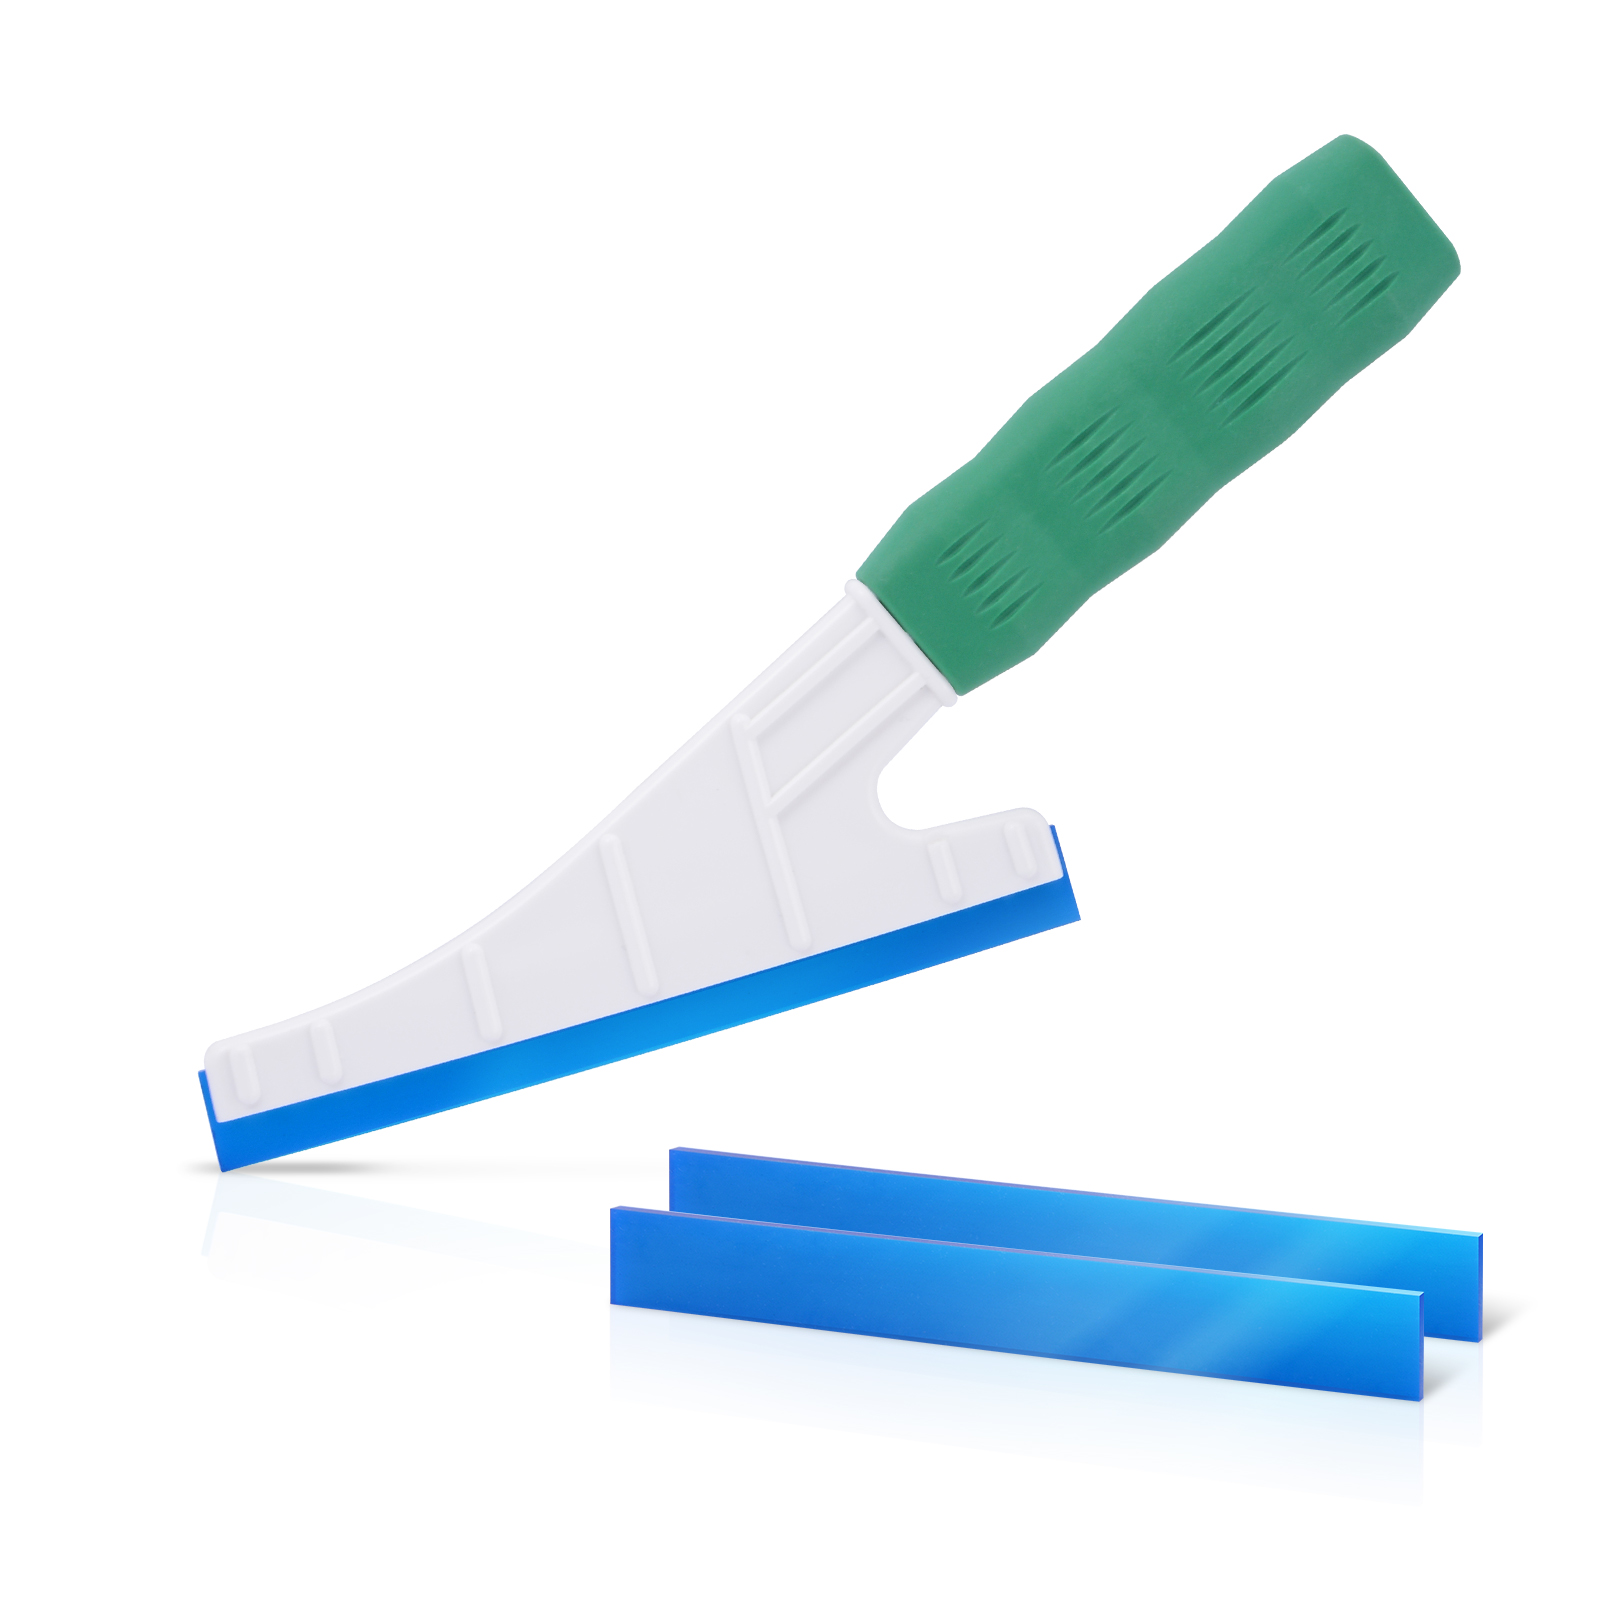 FOSHIO Windscreen Wipers Handled Windshield Rubber Squeegee Window Cleaner Glass Car Cleaning Tool Carbon Fiber Vinyl Wrap Tools